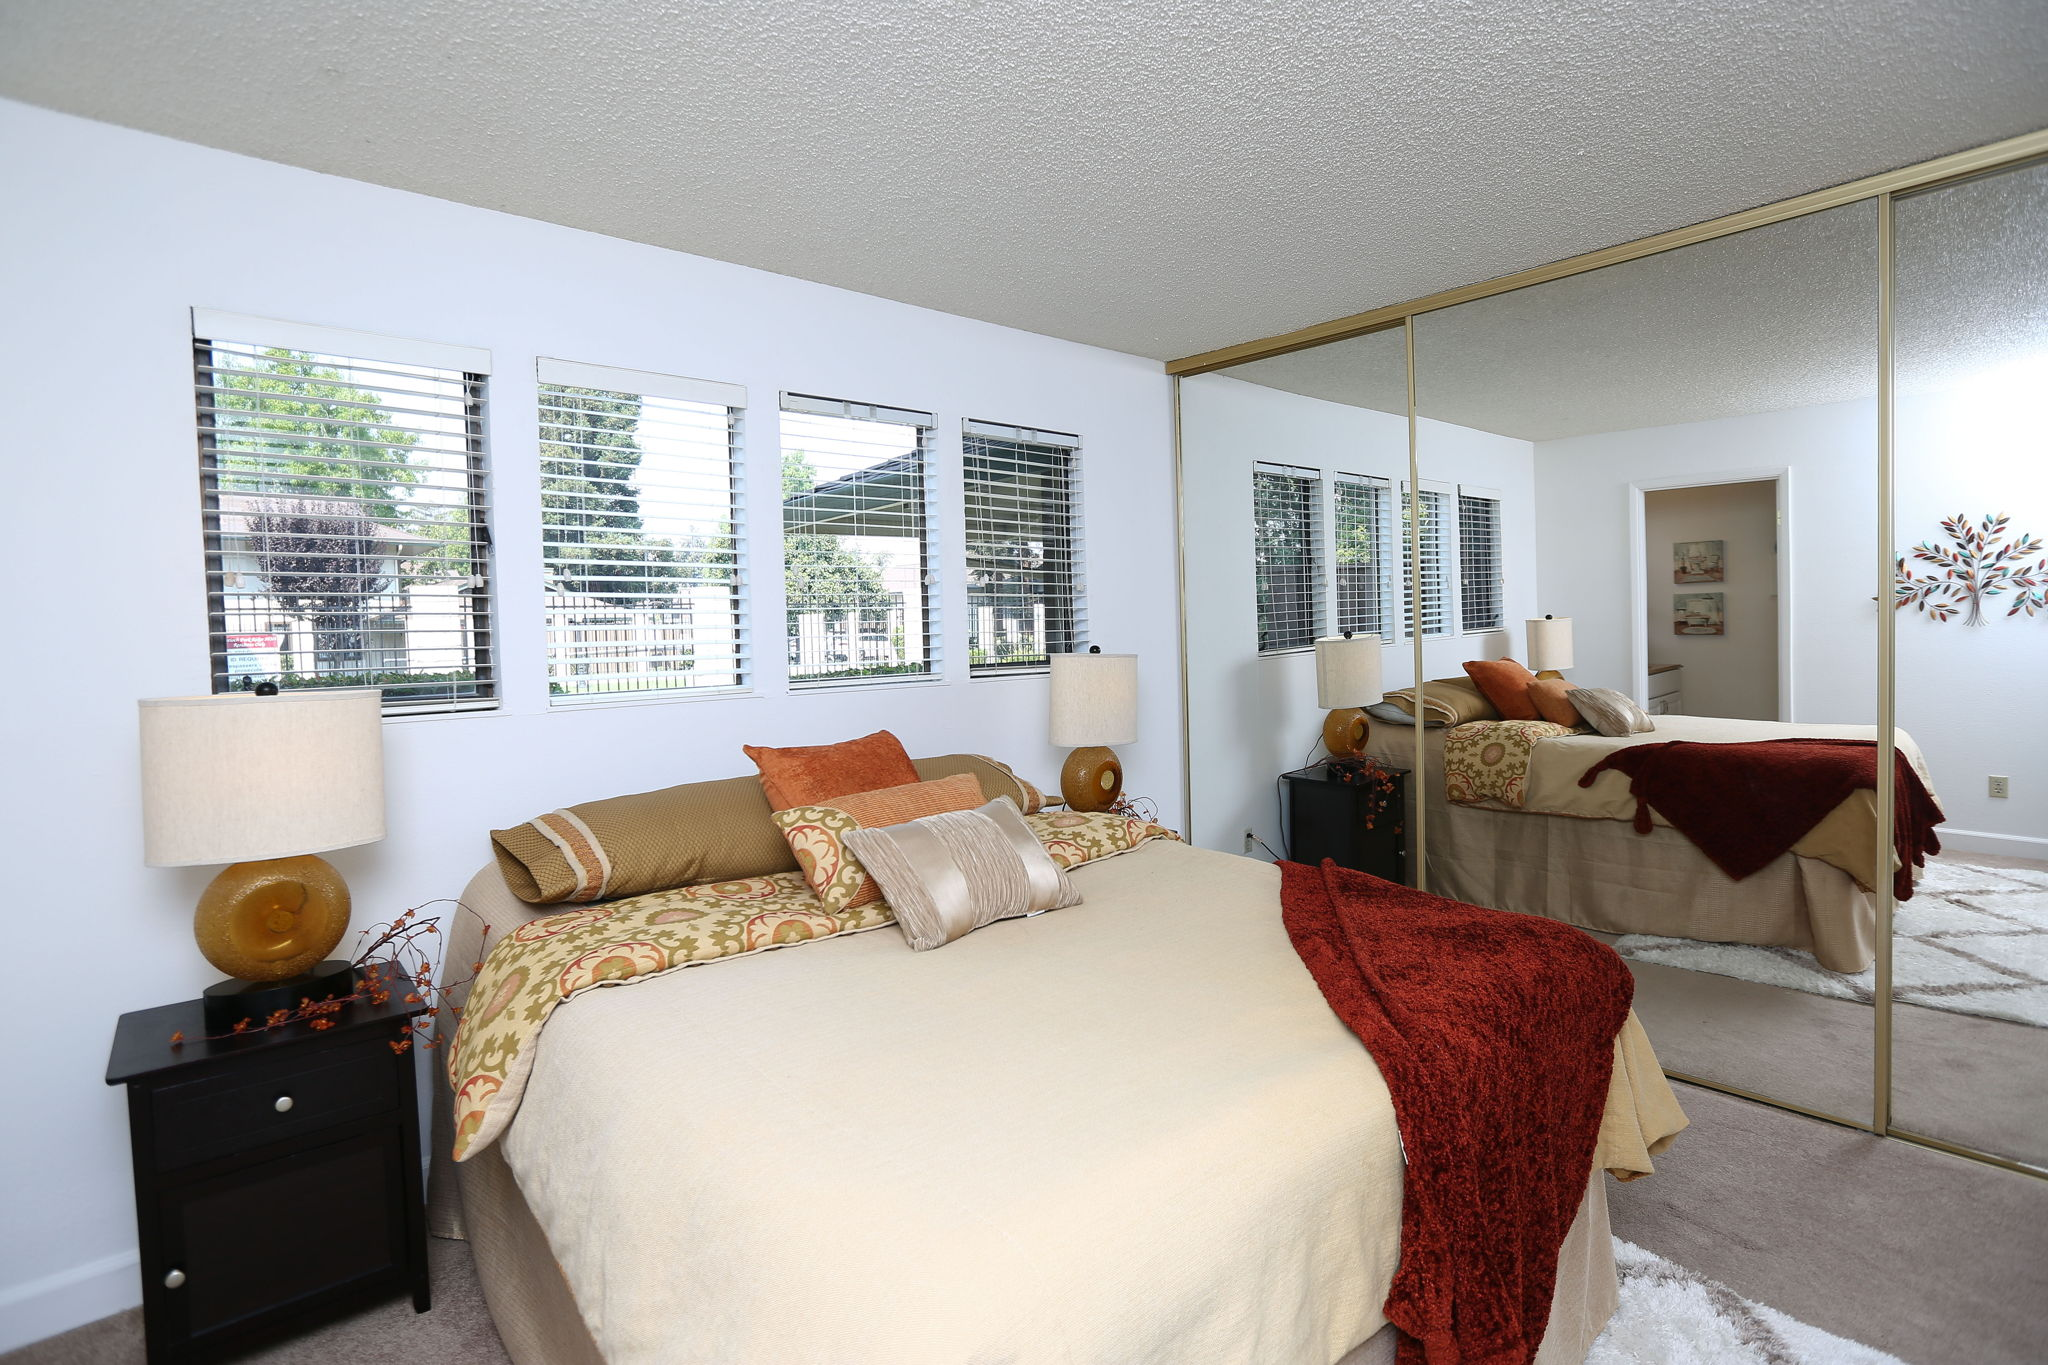 Master bedroom with lots of windows and full wall closet